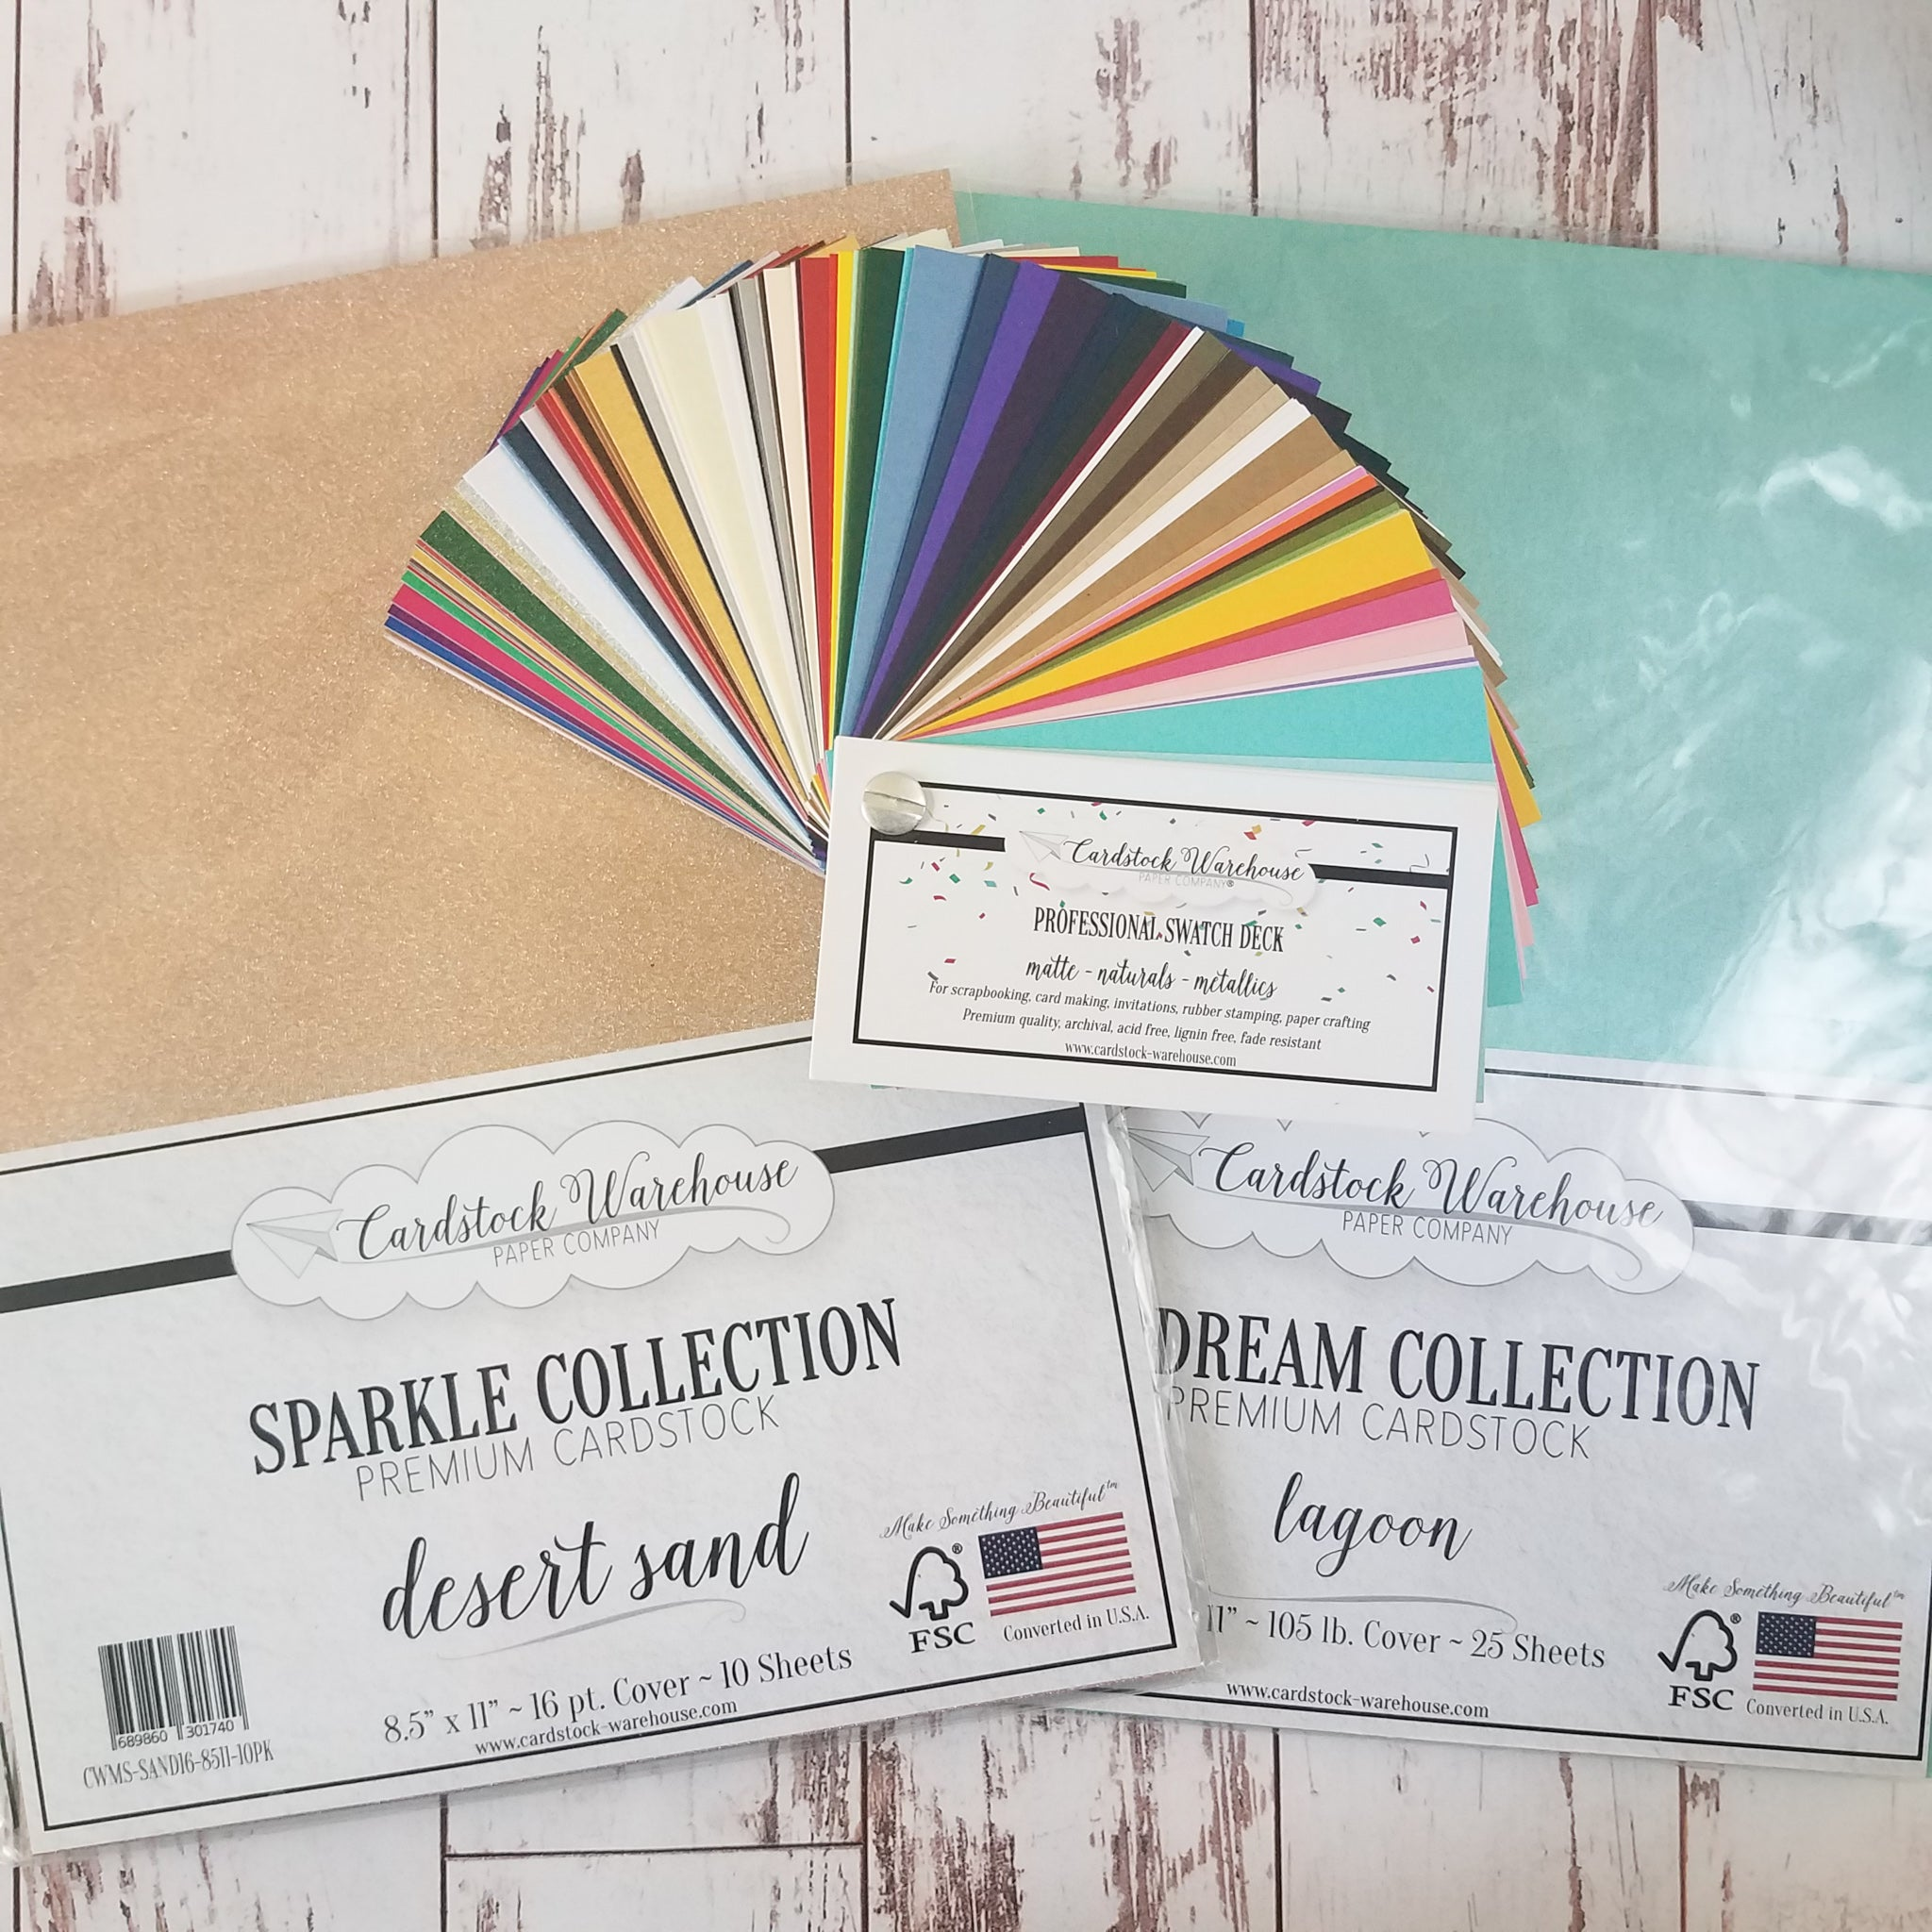 Cardstock Warehouse papers and swatch book